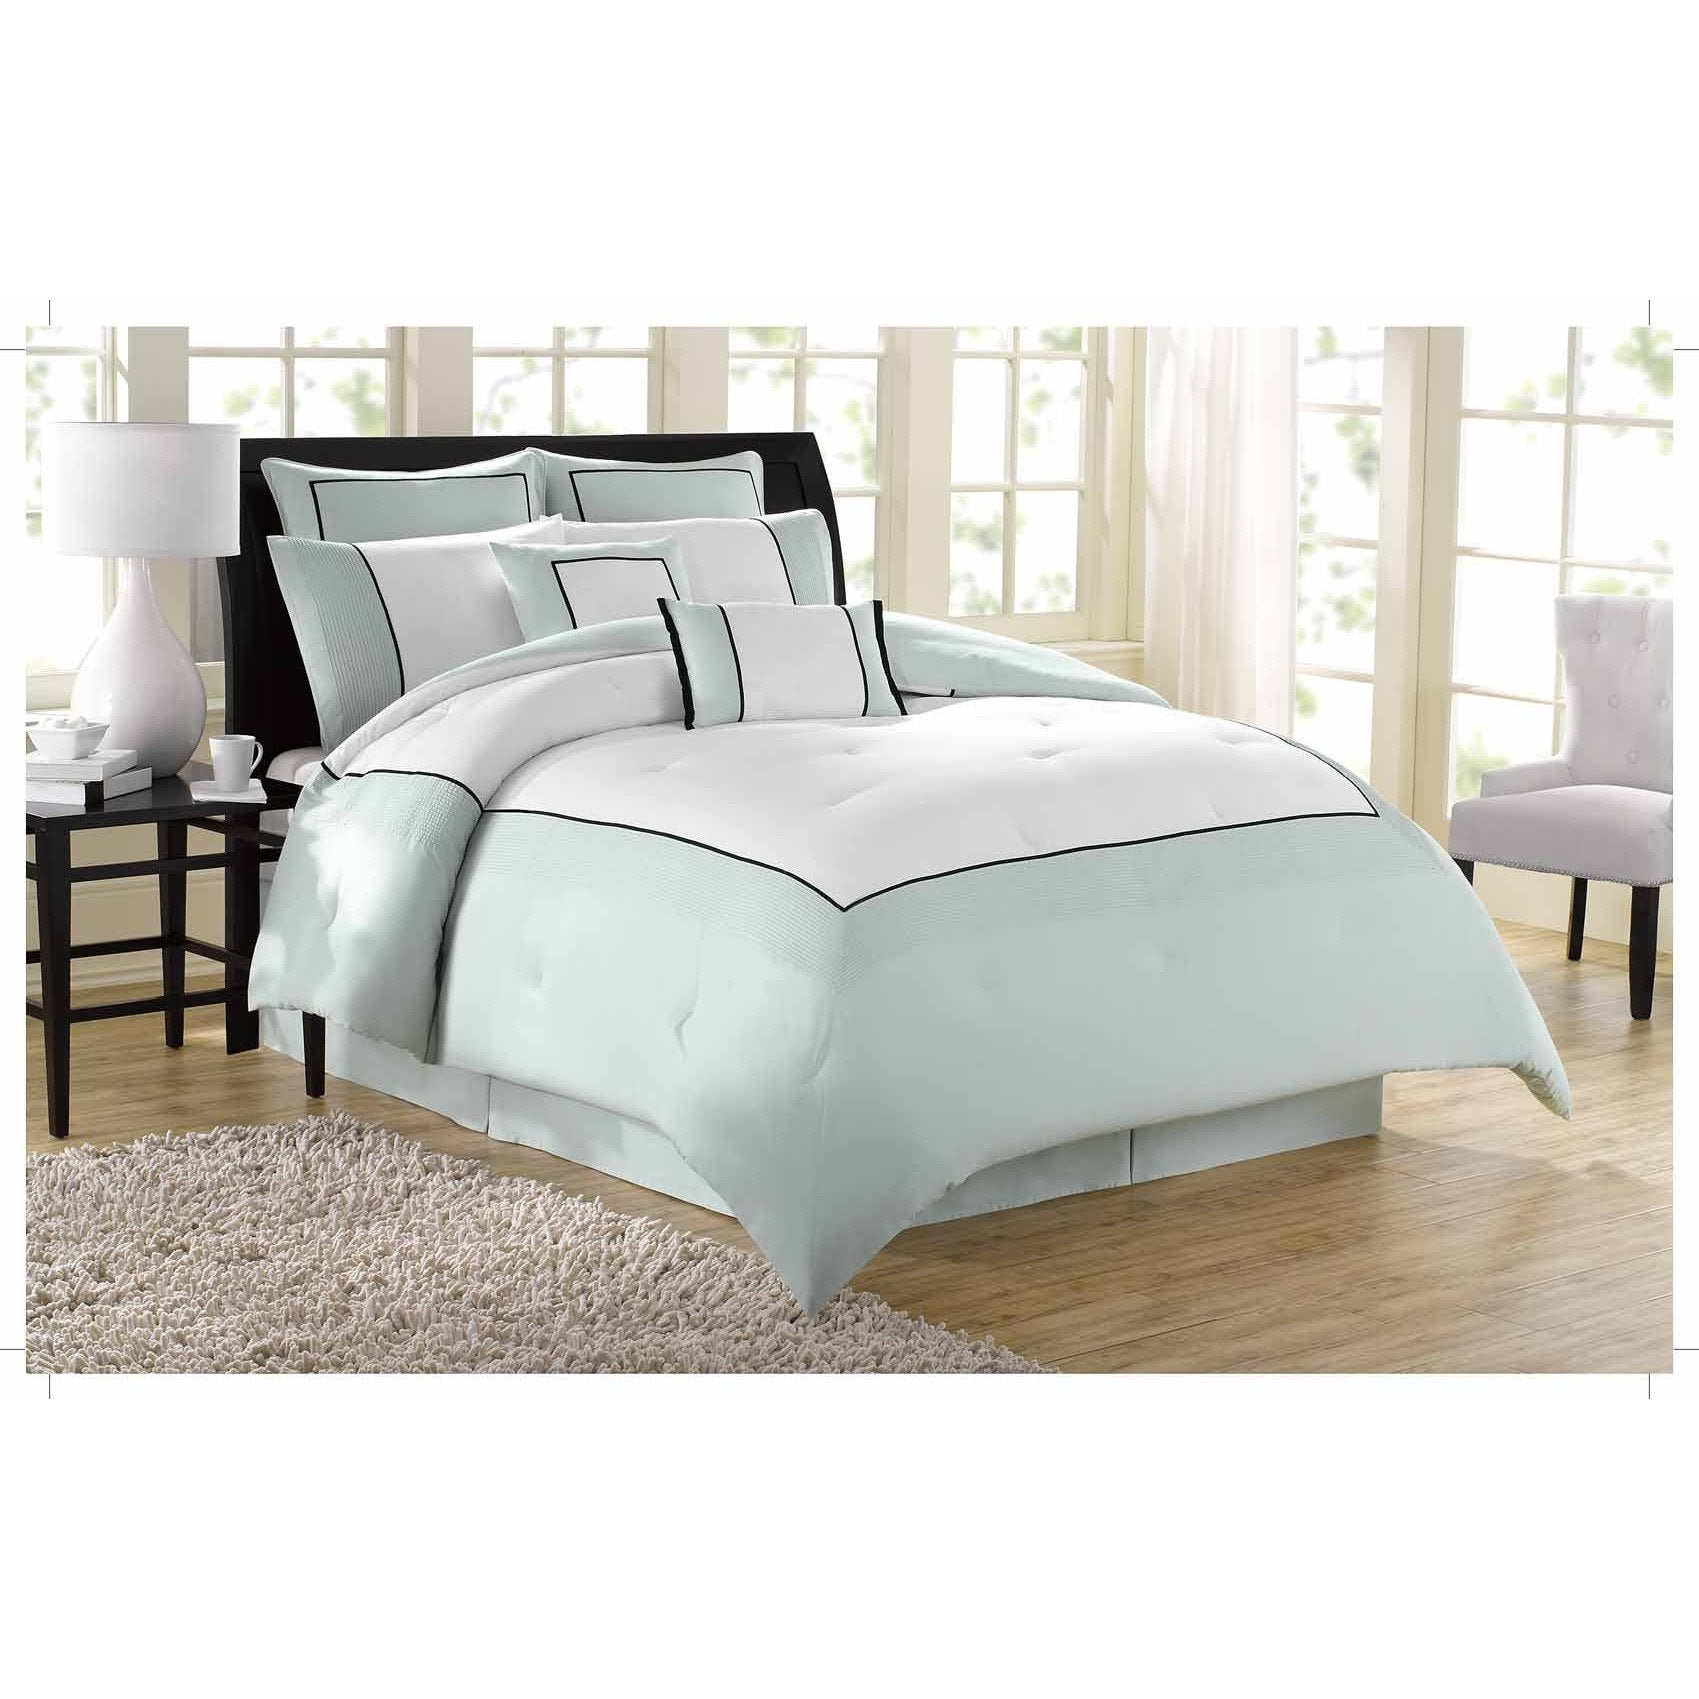 at bed macy collection pin created york s set bedding bath for comforter only fresco new hotel